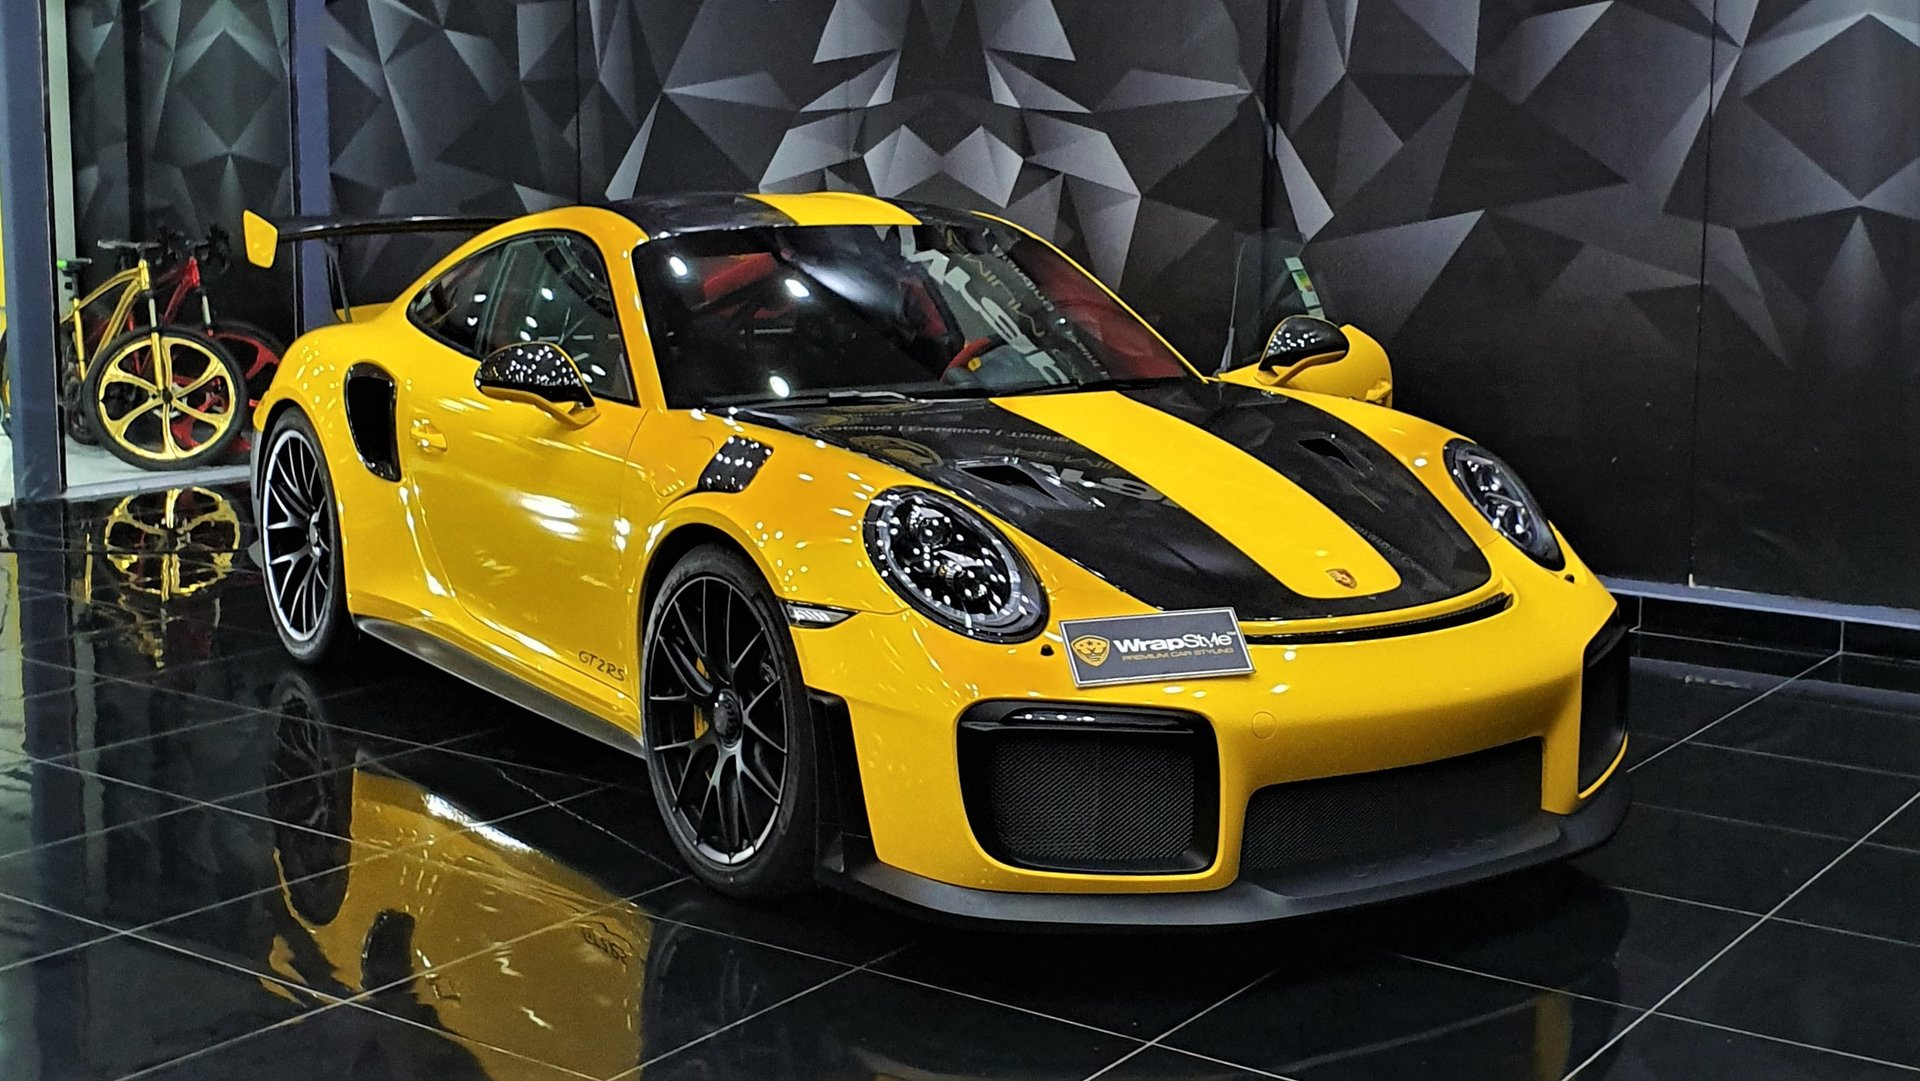 Porsche 911 Gt2 Rs Stripes Design Wrapstyle